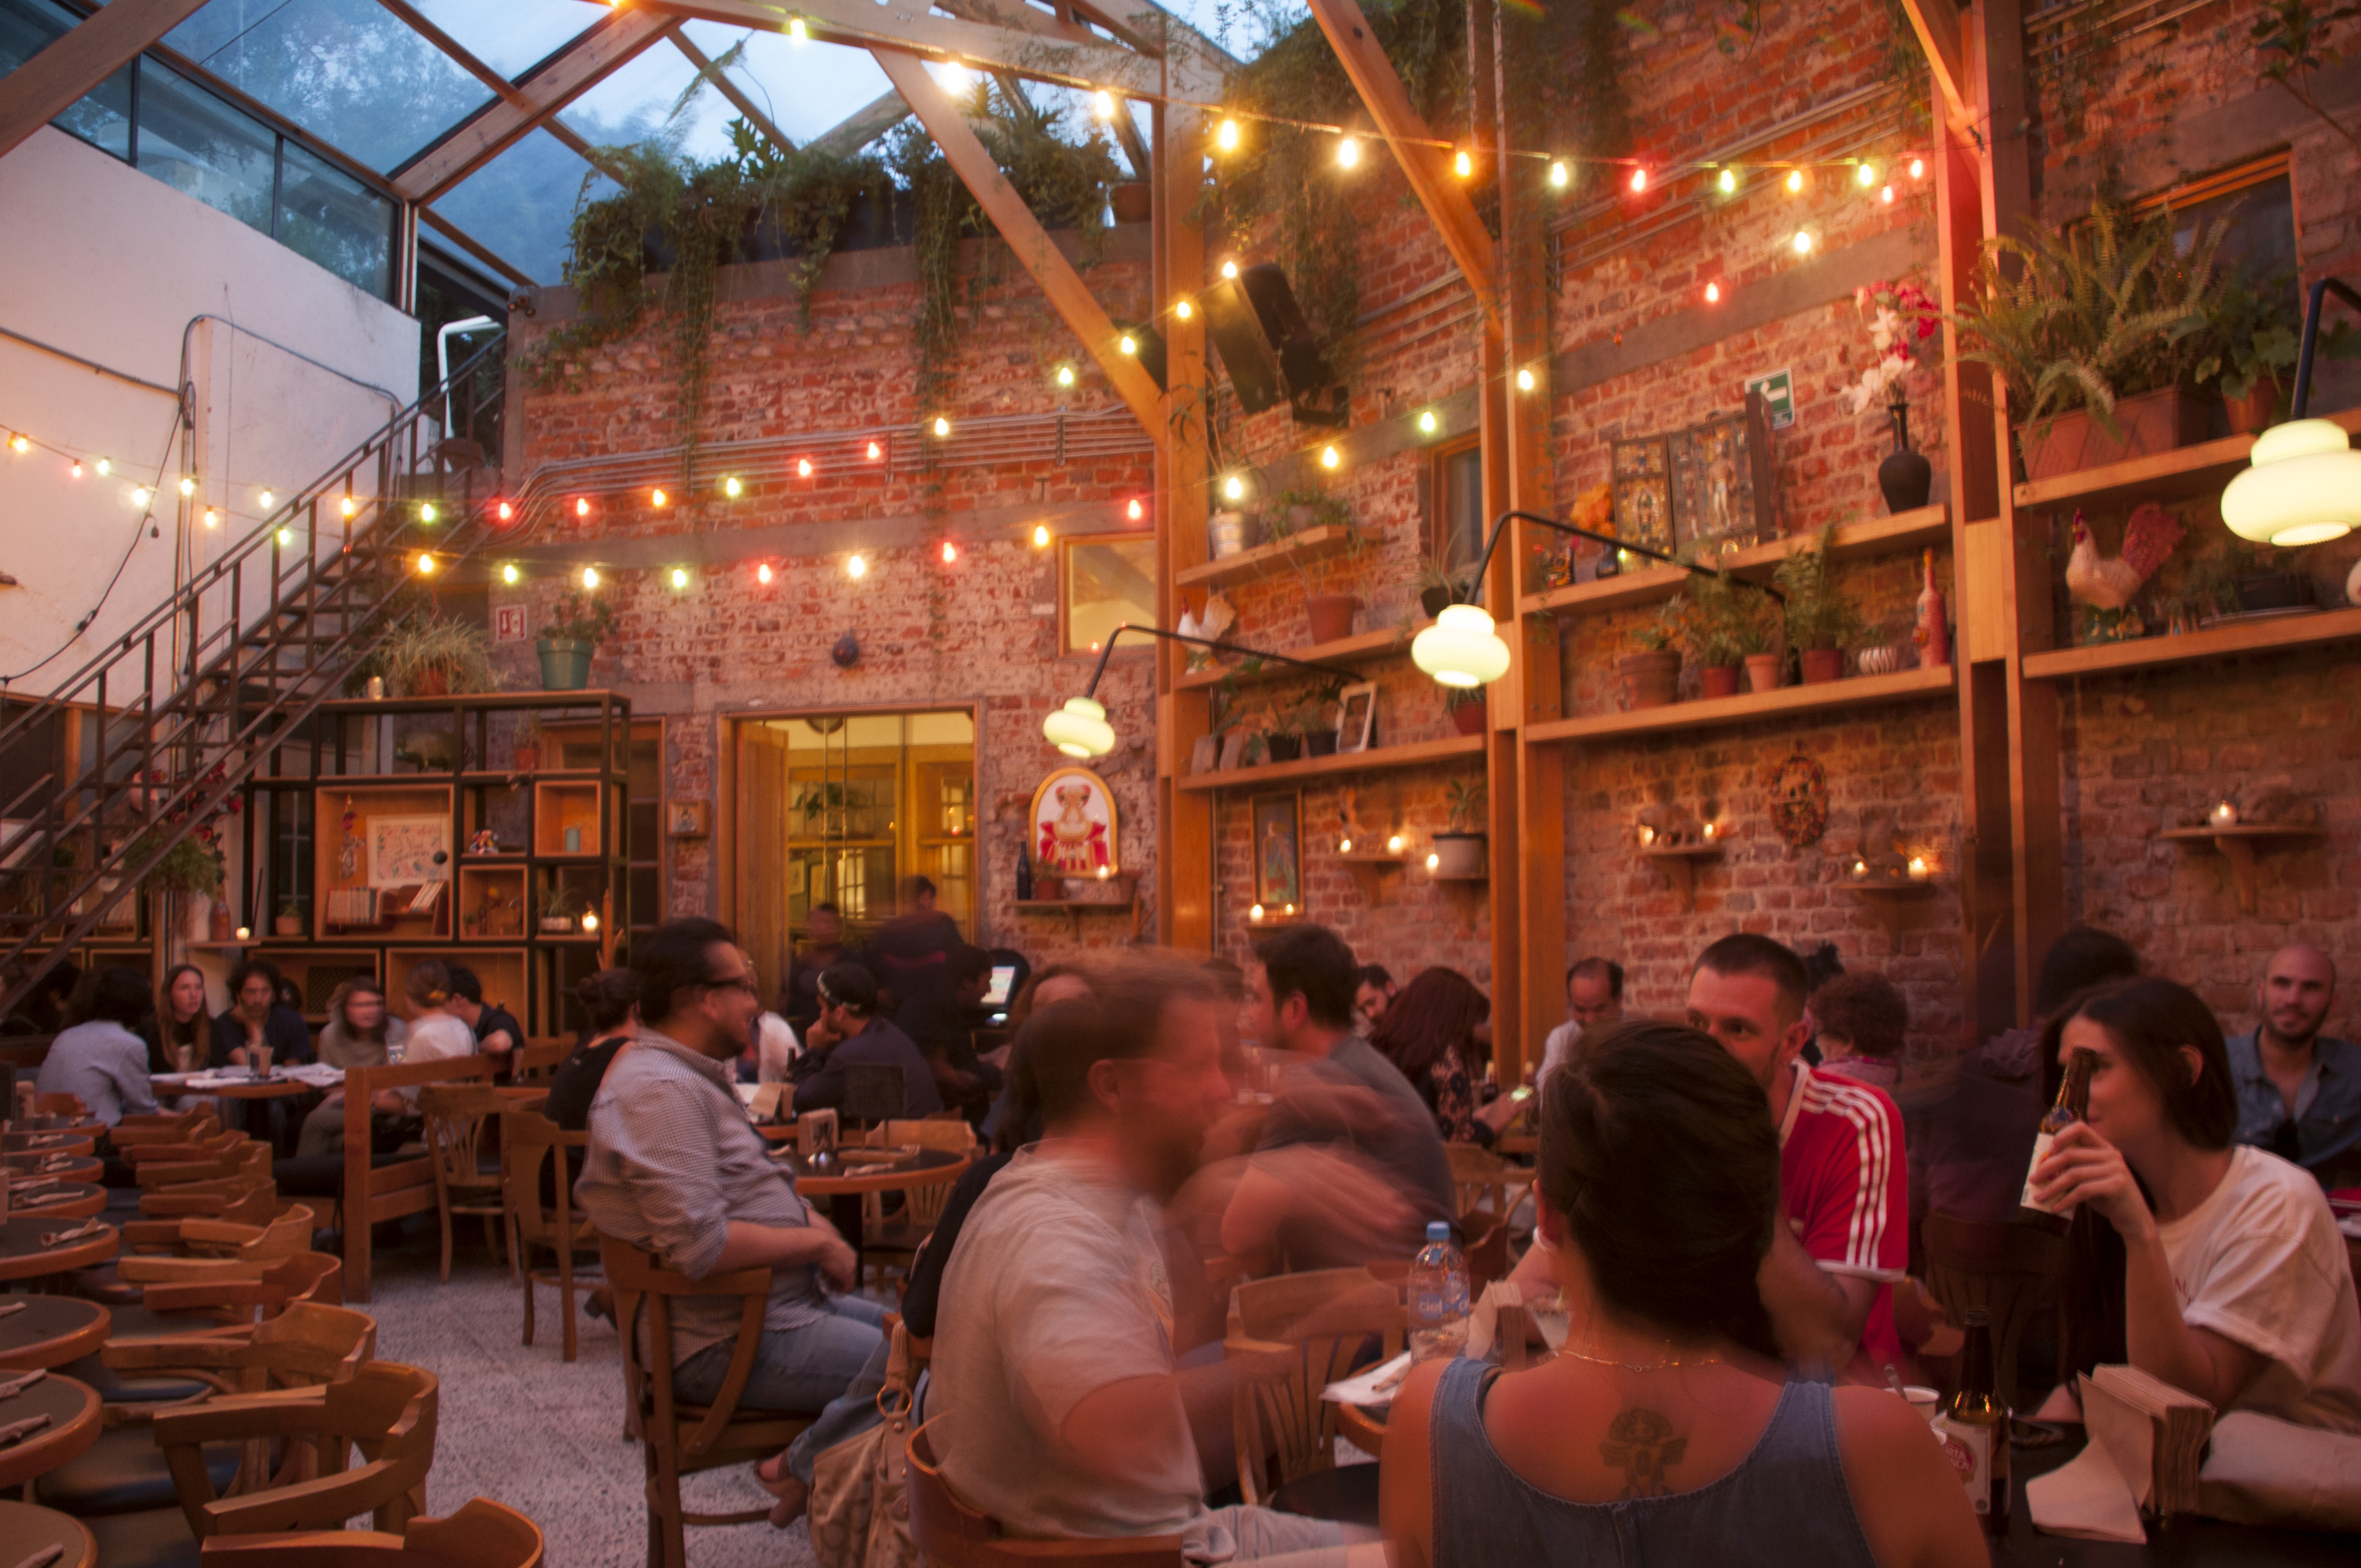 A restaurant interior, with tables full of diners, double height exposed brick walls covered with decorations, and a glass roof